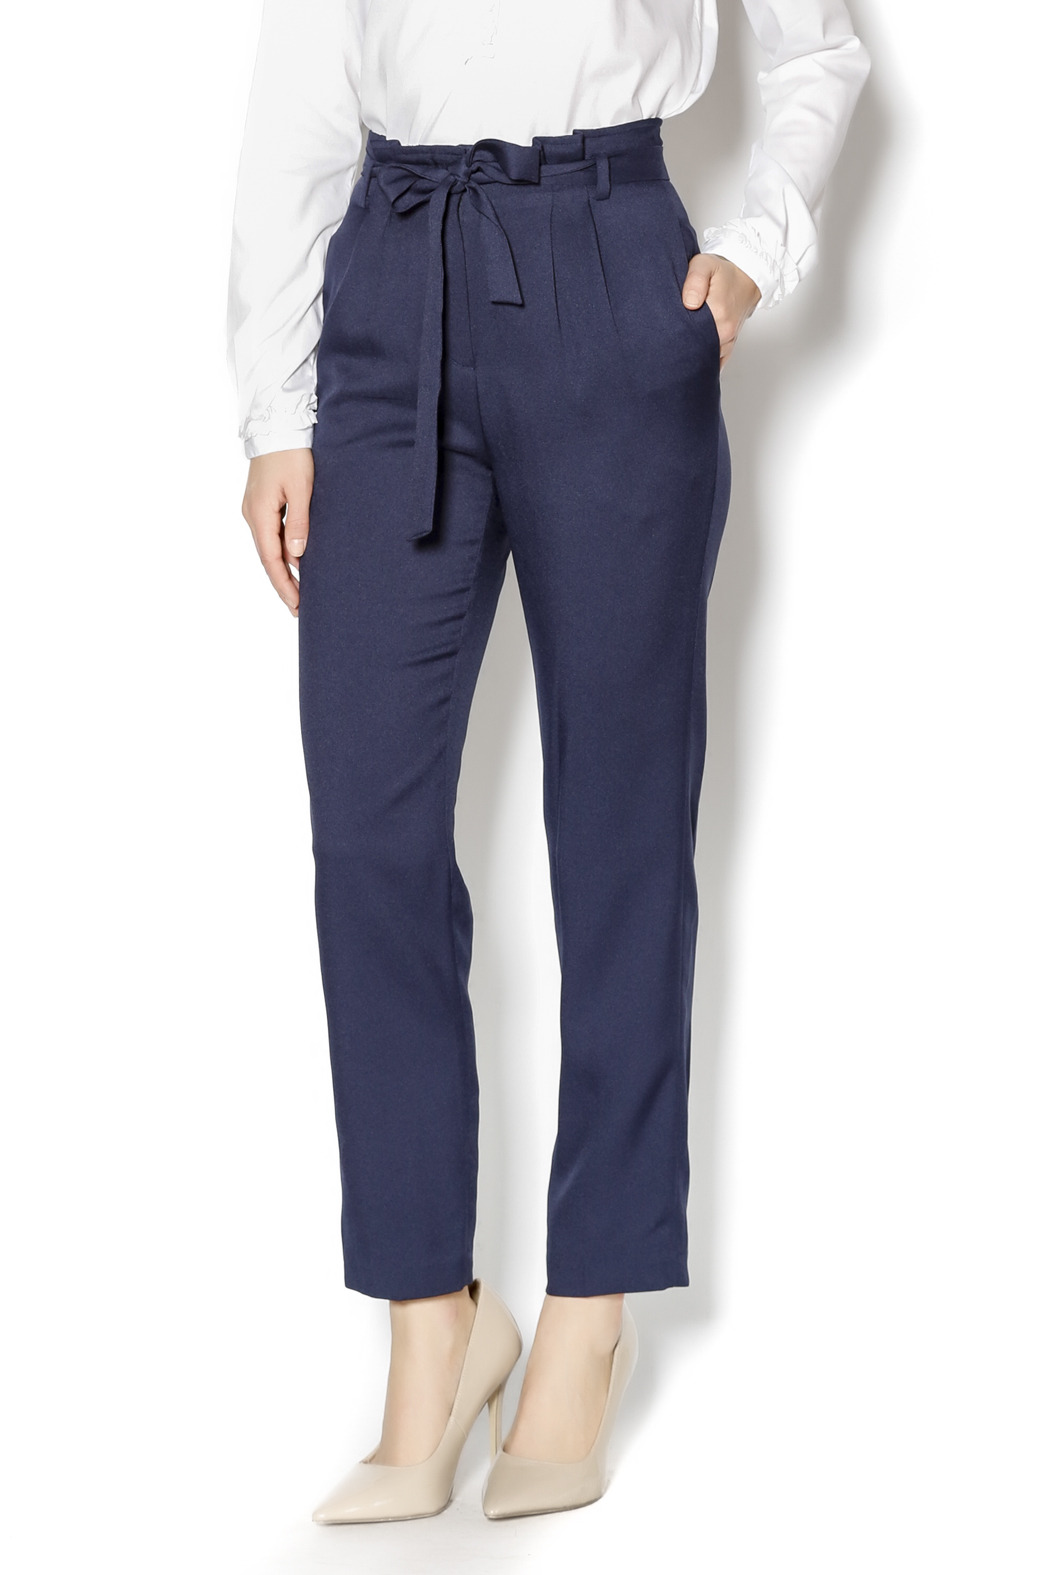 Pinkyotto Navy High Waisted Tie Pants - Main Image